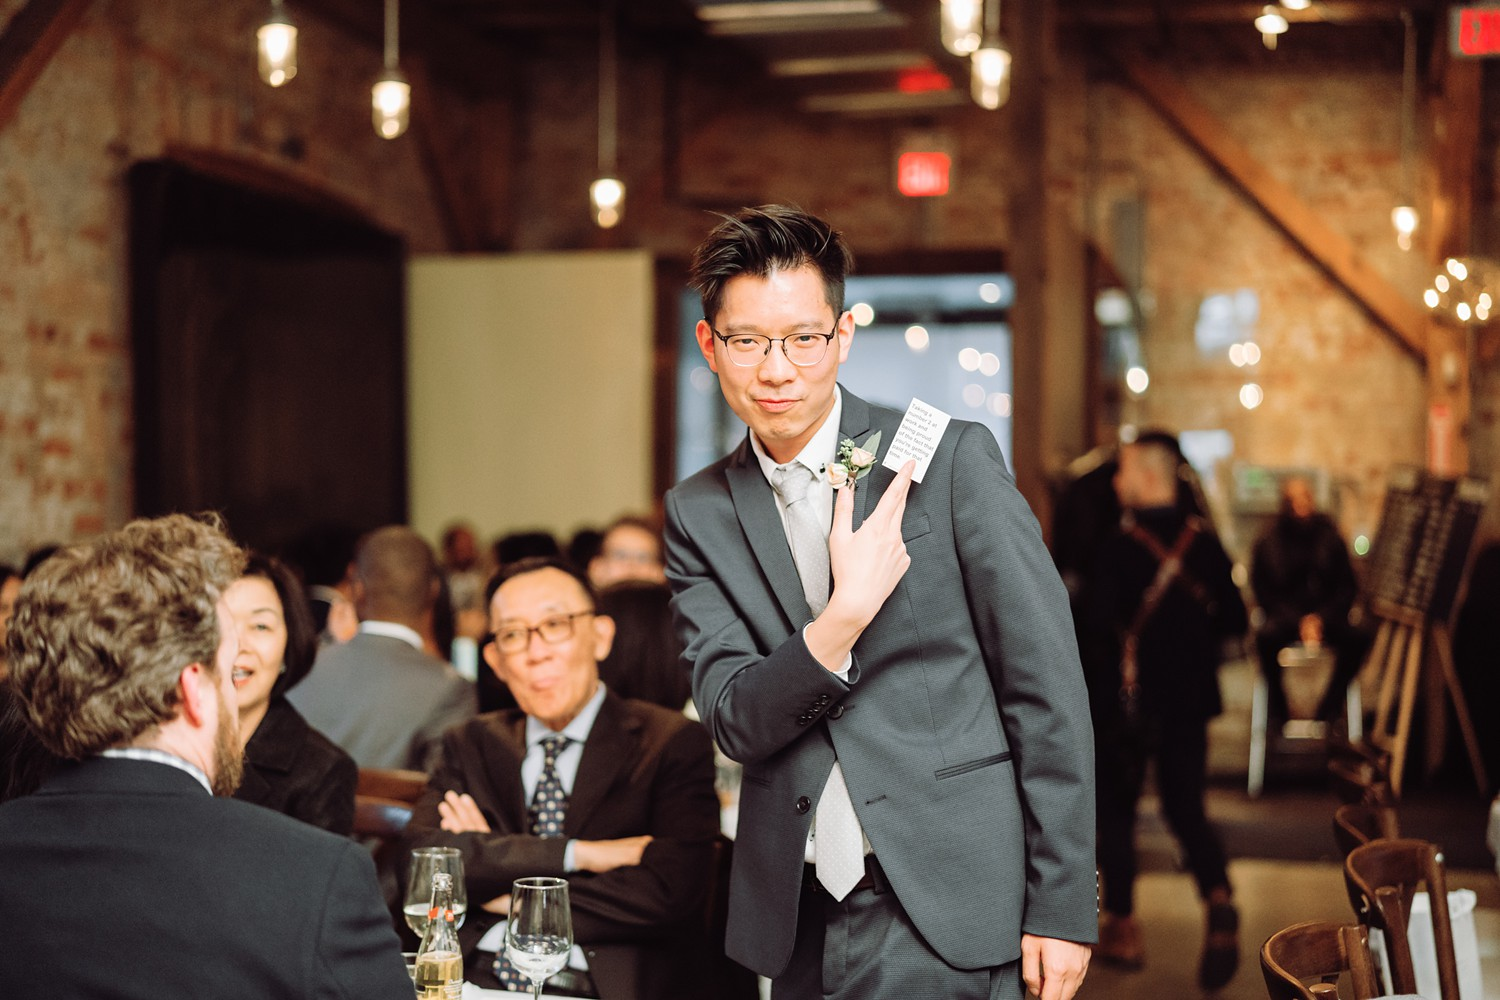 Cards_Against_Humanity_Archeo_Distillery_District_Wedding_Photos_Toronto_Destination_Wedding_Photographer-Rhythm_Photography